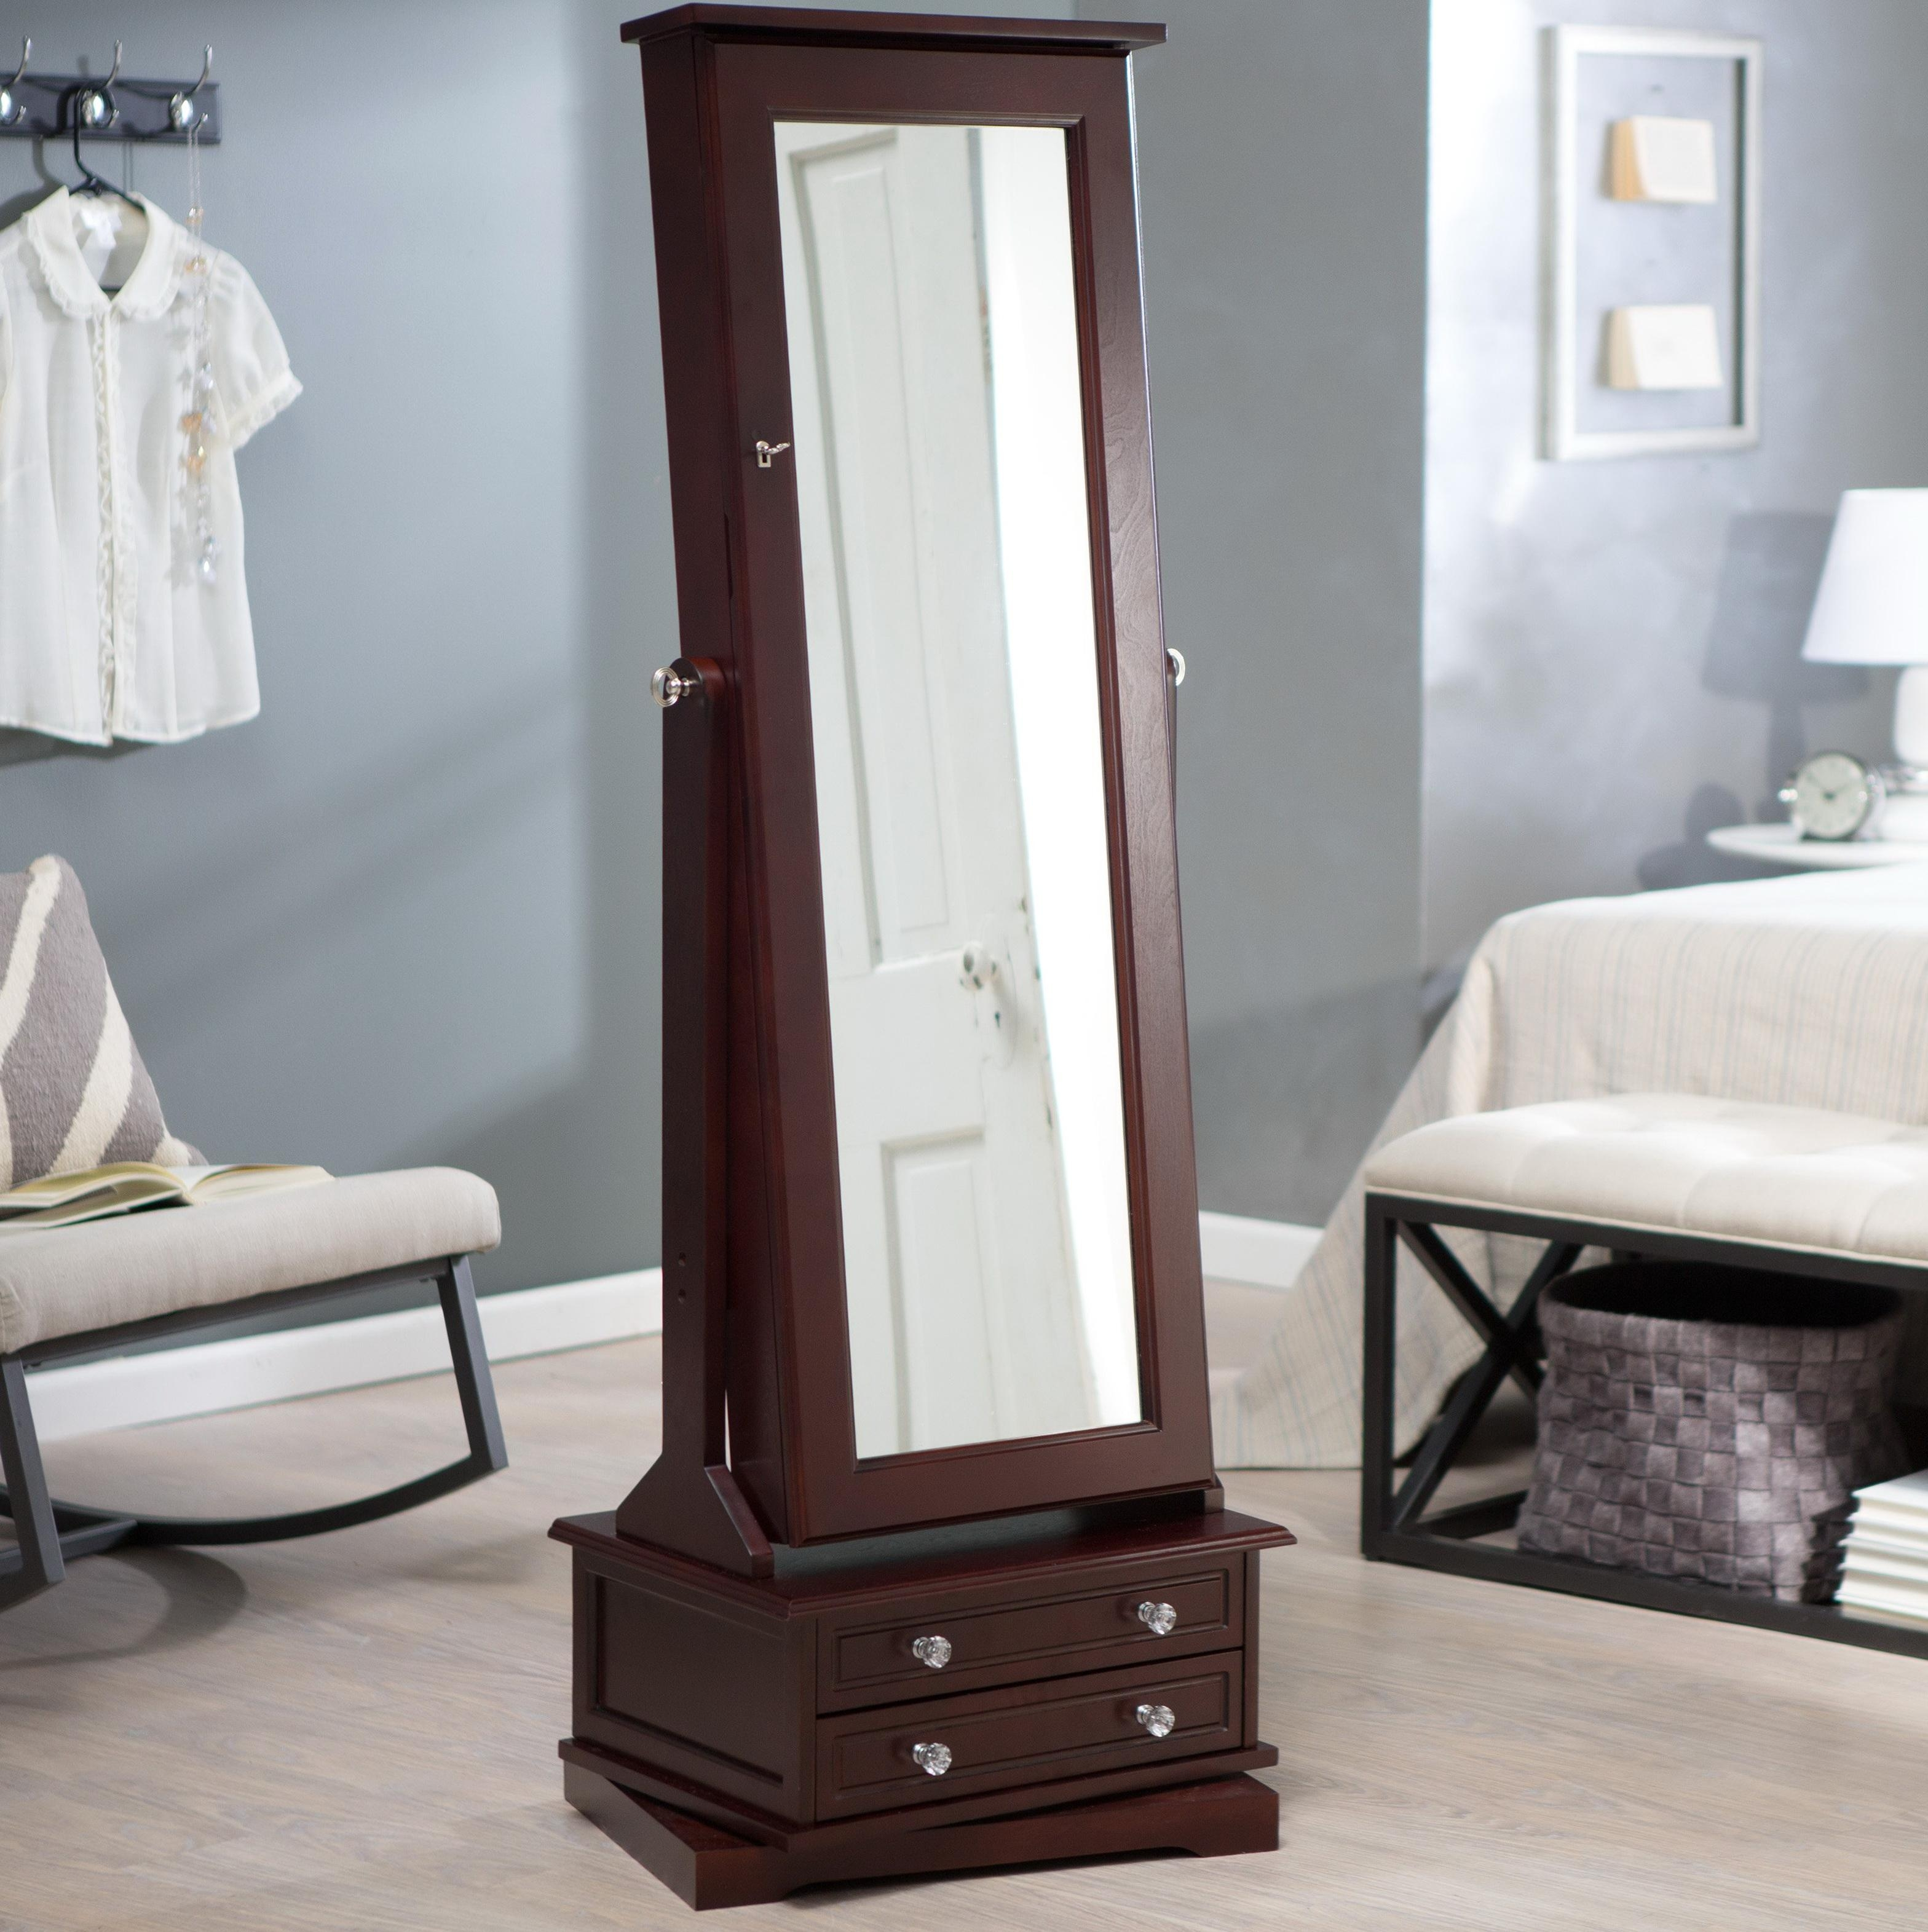 Bedroom Furniture : Floor Mirror White Floor Mirror Shabby Chic Intended For Large Shabby Chic Mirrors (Image 4 of 20)